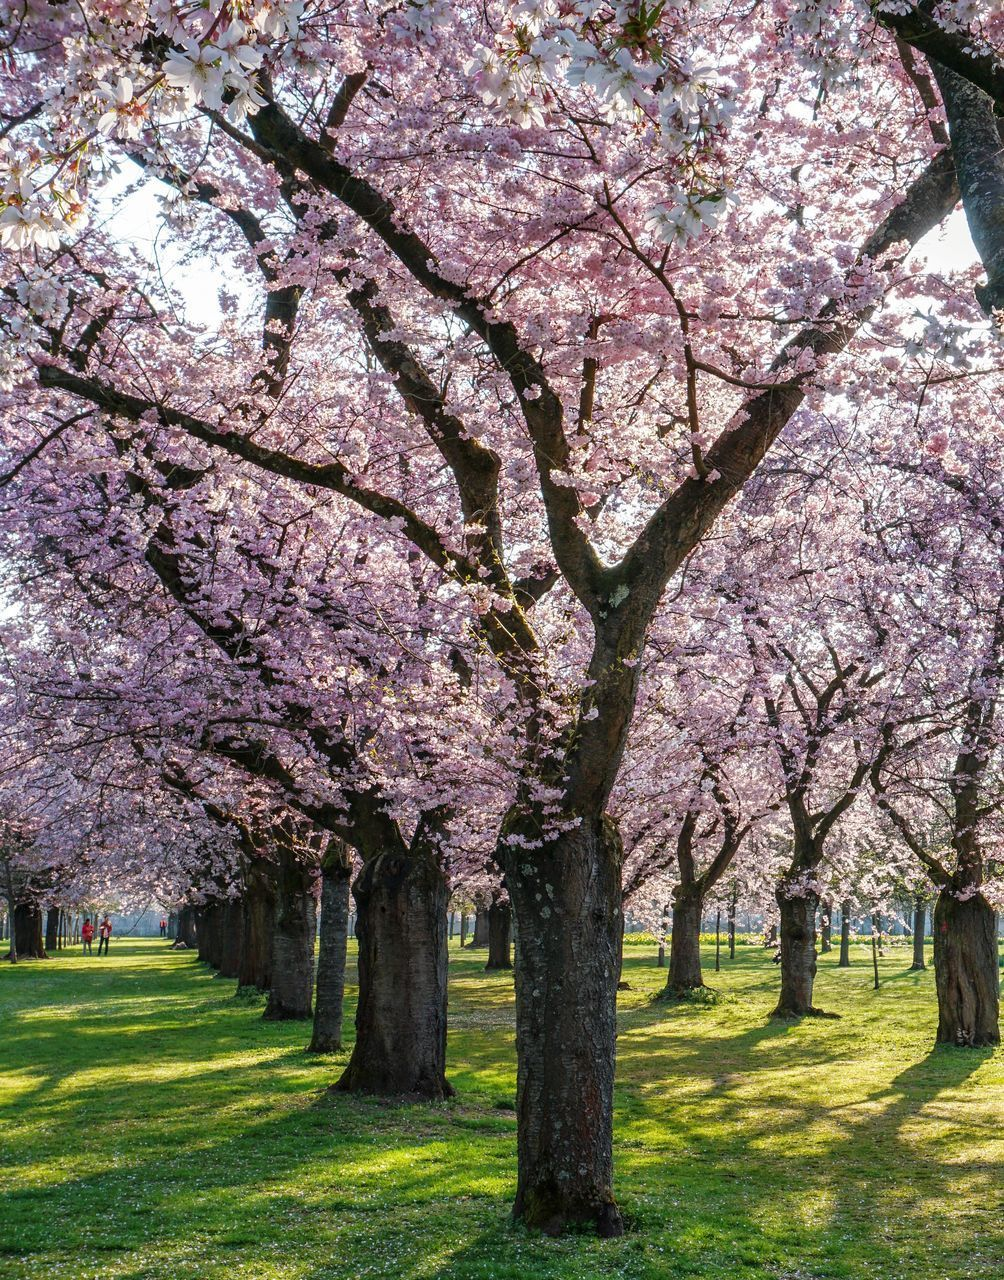 plant, tree, blossom, flower, flowering plant, springtime, growth, freshness, trunk, tree trunk, branch, beauty in nature, fragility, nature, cherry blossom, grass, park, day, no people, cherry tree, pink color, outdoors, treelined, spring